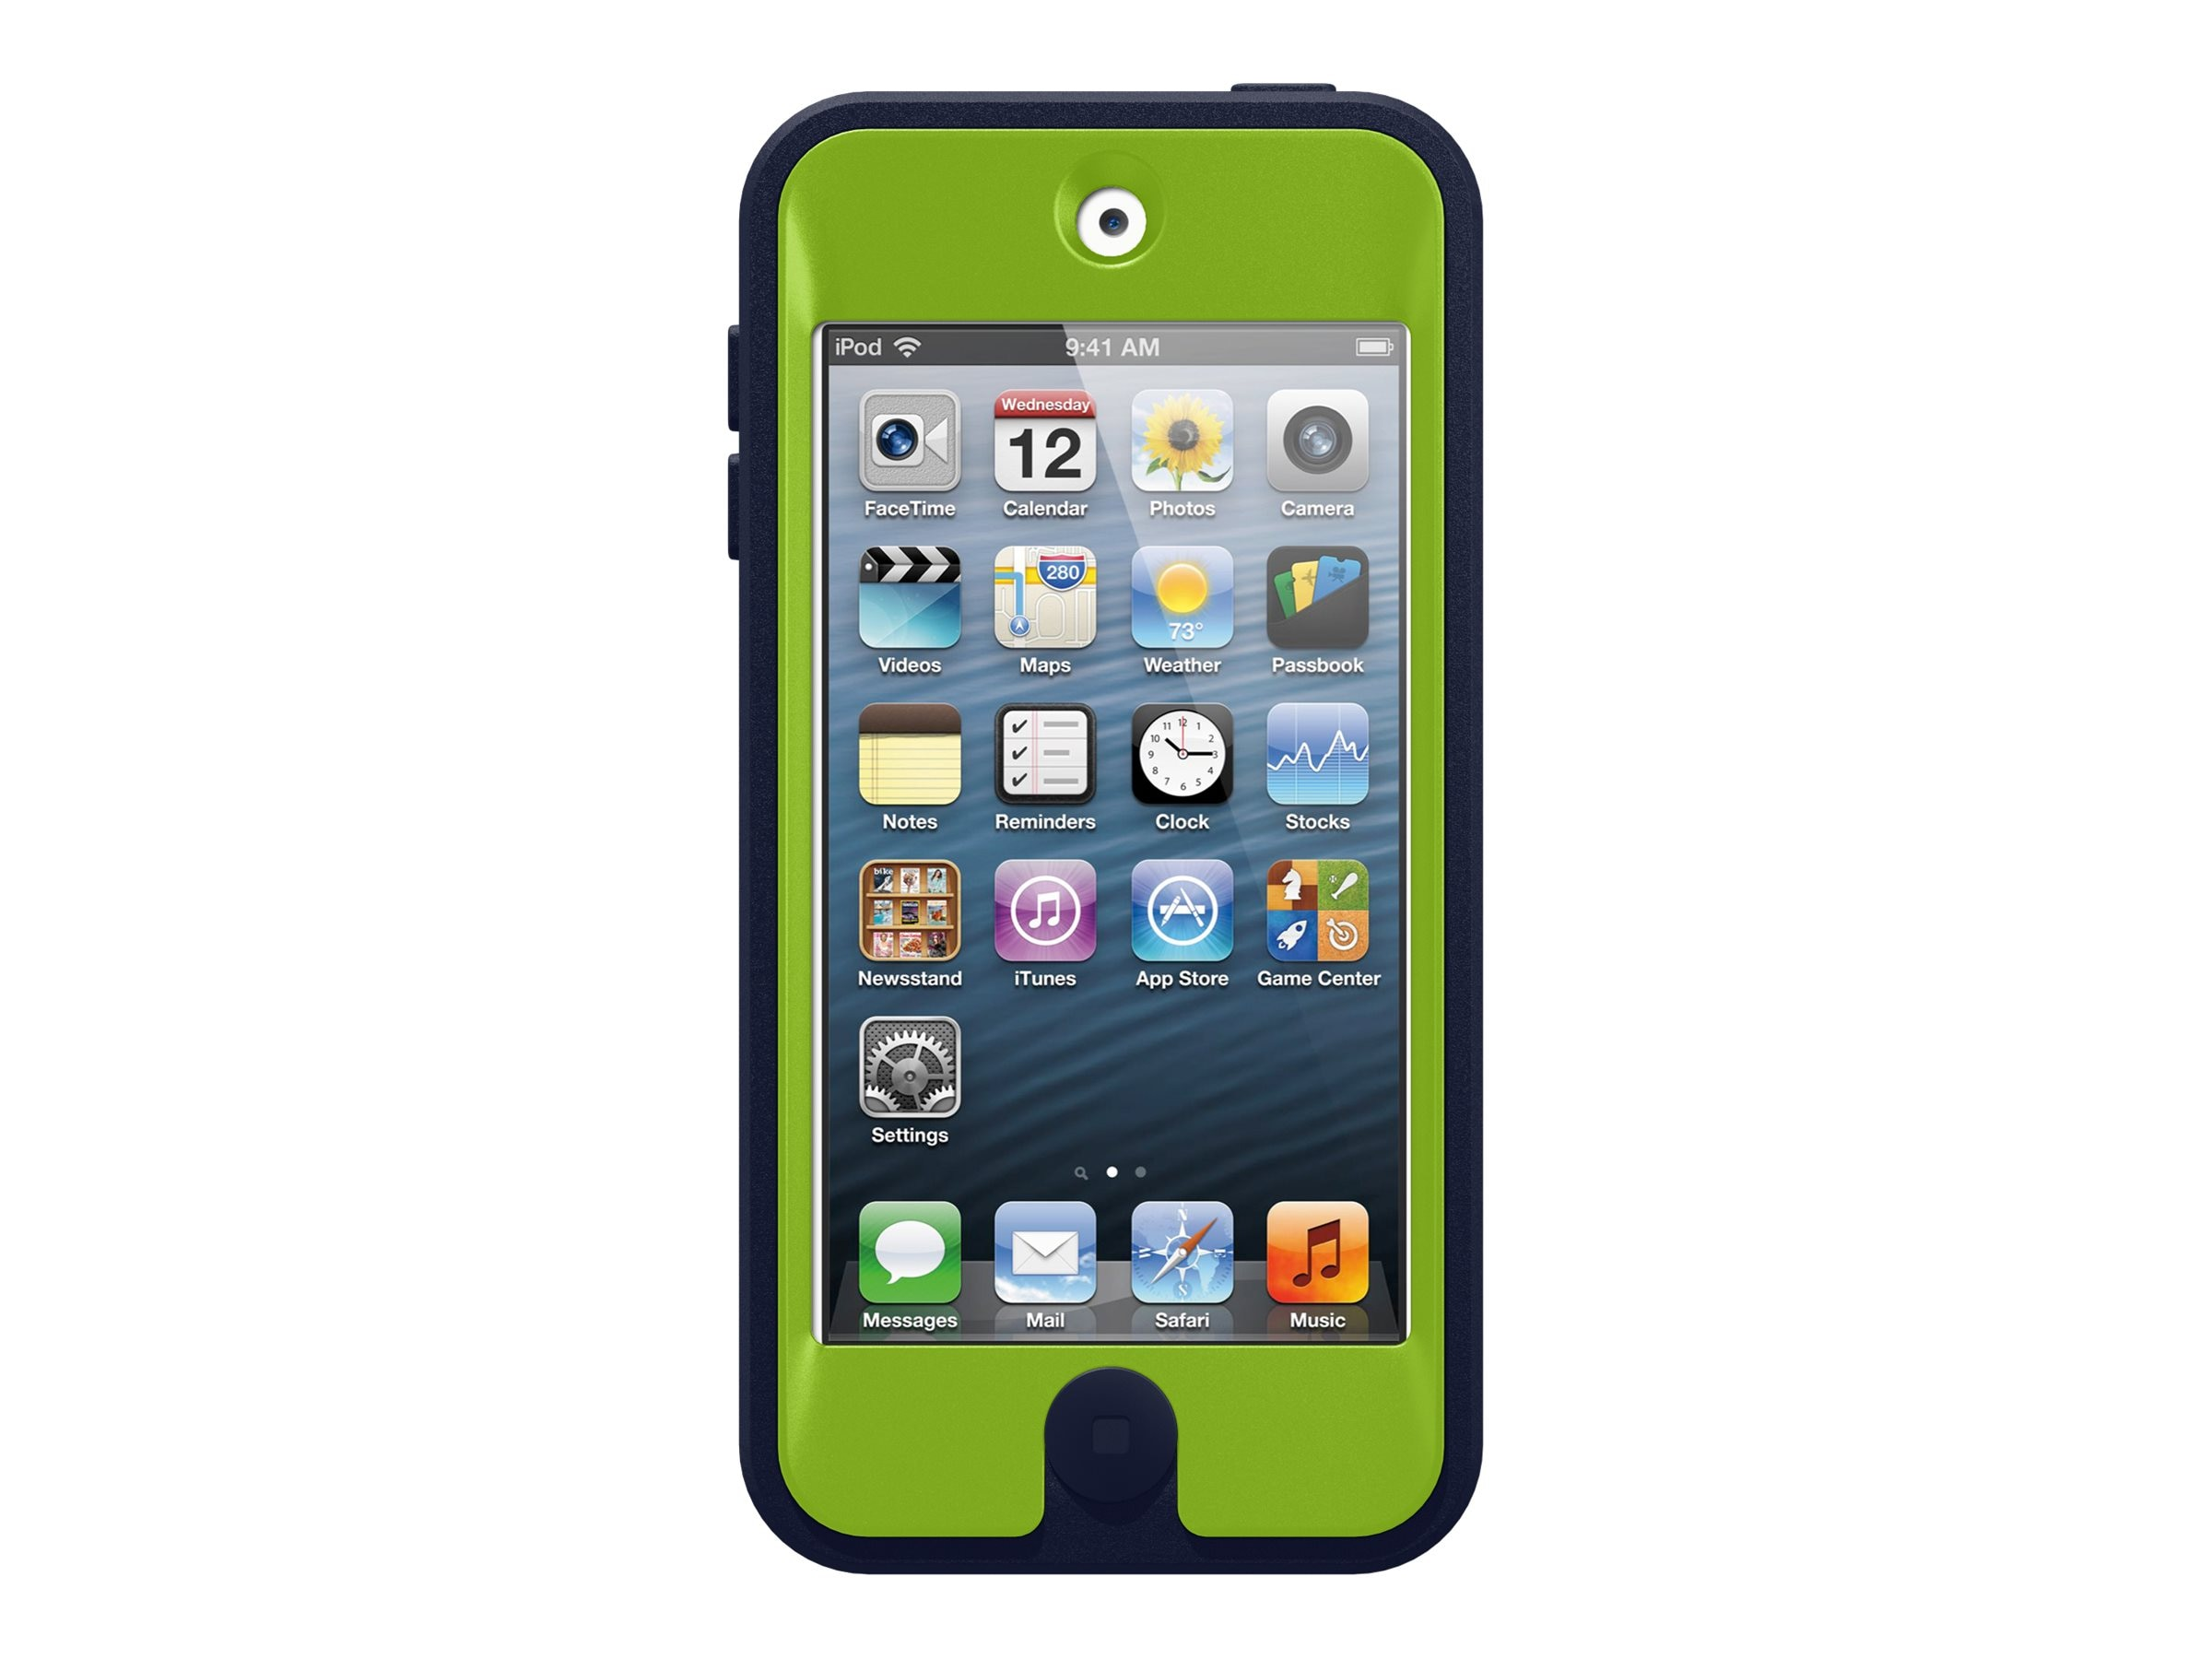 OtterBox Defender Case for iPod Touch 5g, Punk, 77-25219, 17248619, Carrying Cases - Phones/PDAs